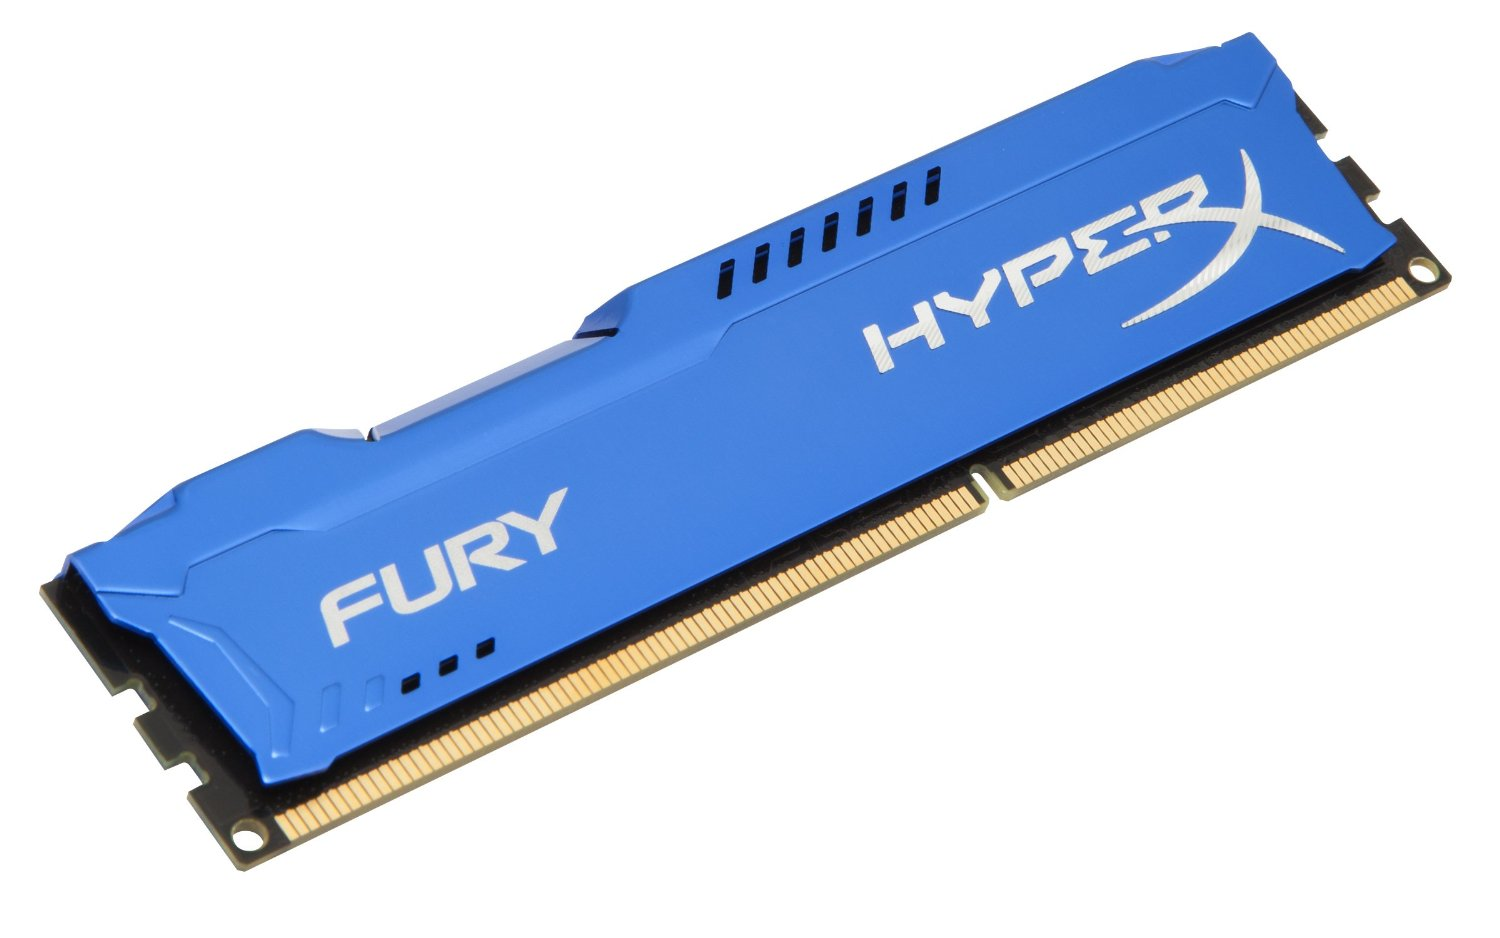 Ram Kingston 4G 1600MHZ DDR3 CL10 Dimm HyperX Fury Blue